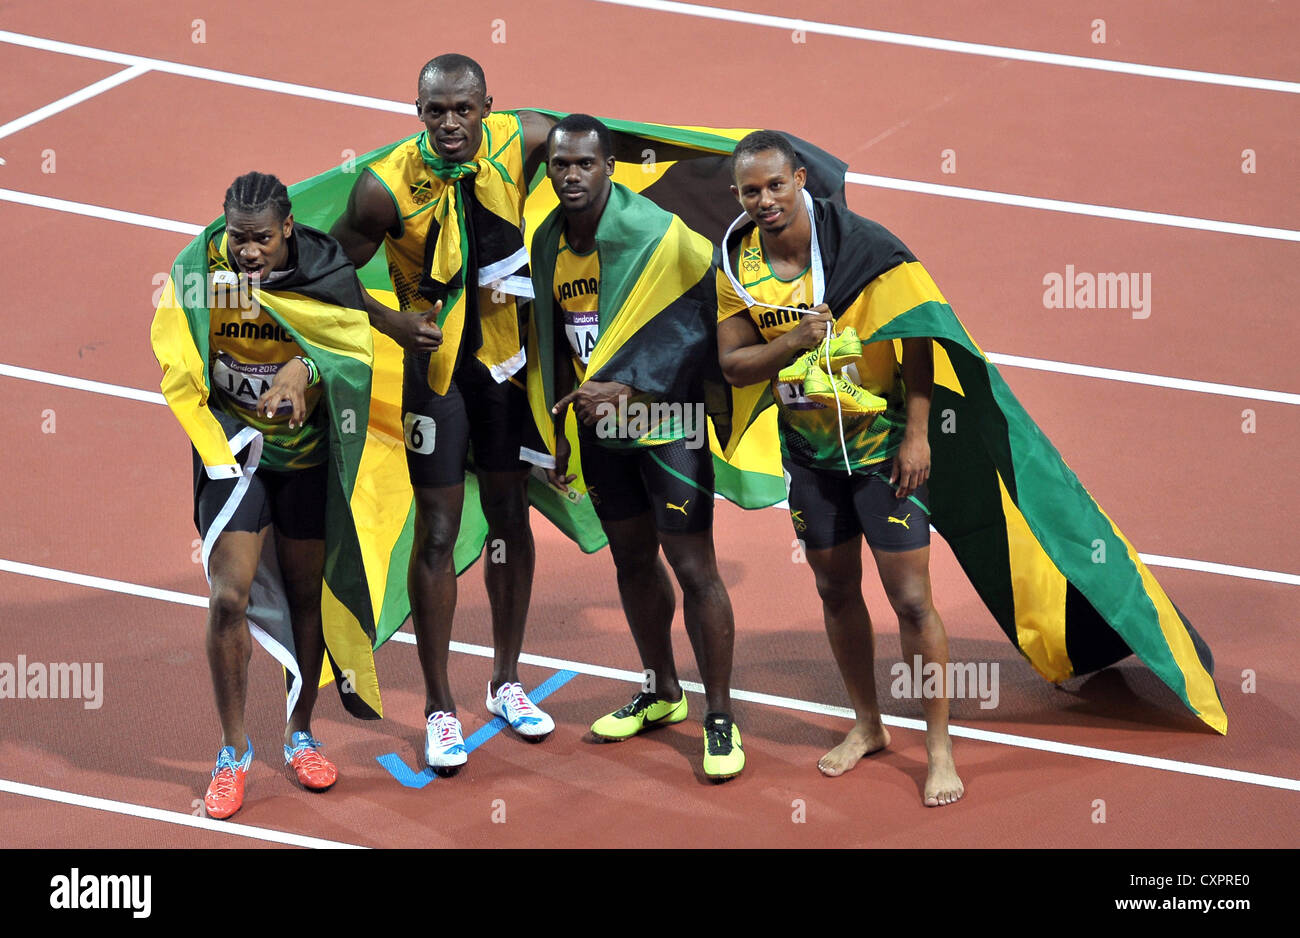 The Jamaican 4x100m team. celebrate after their world record in the 4x100m final - Stock Image